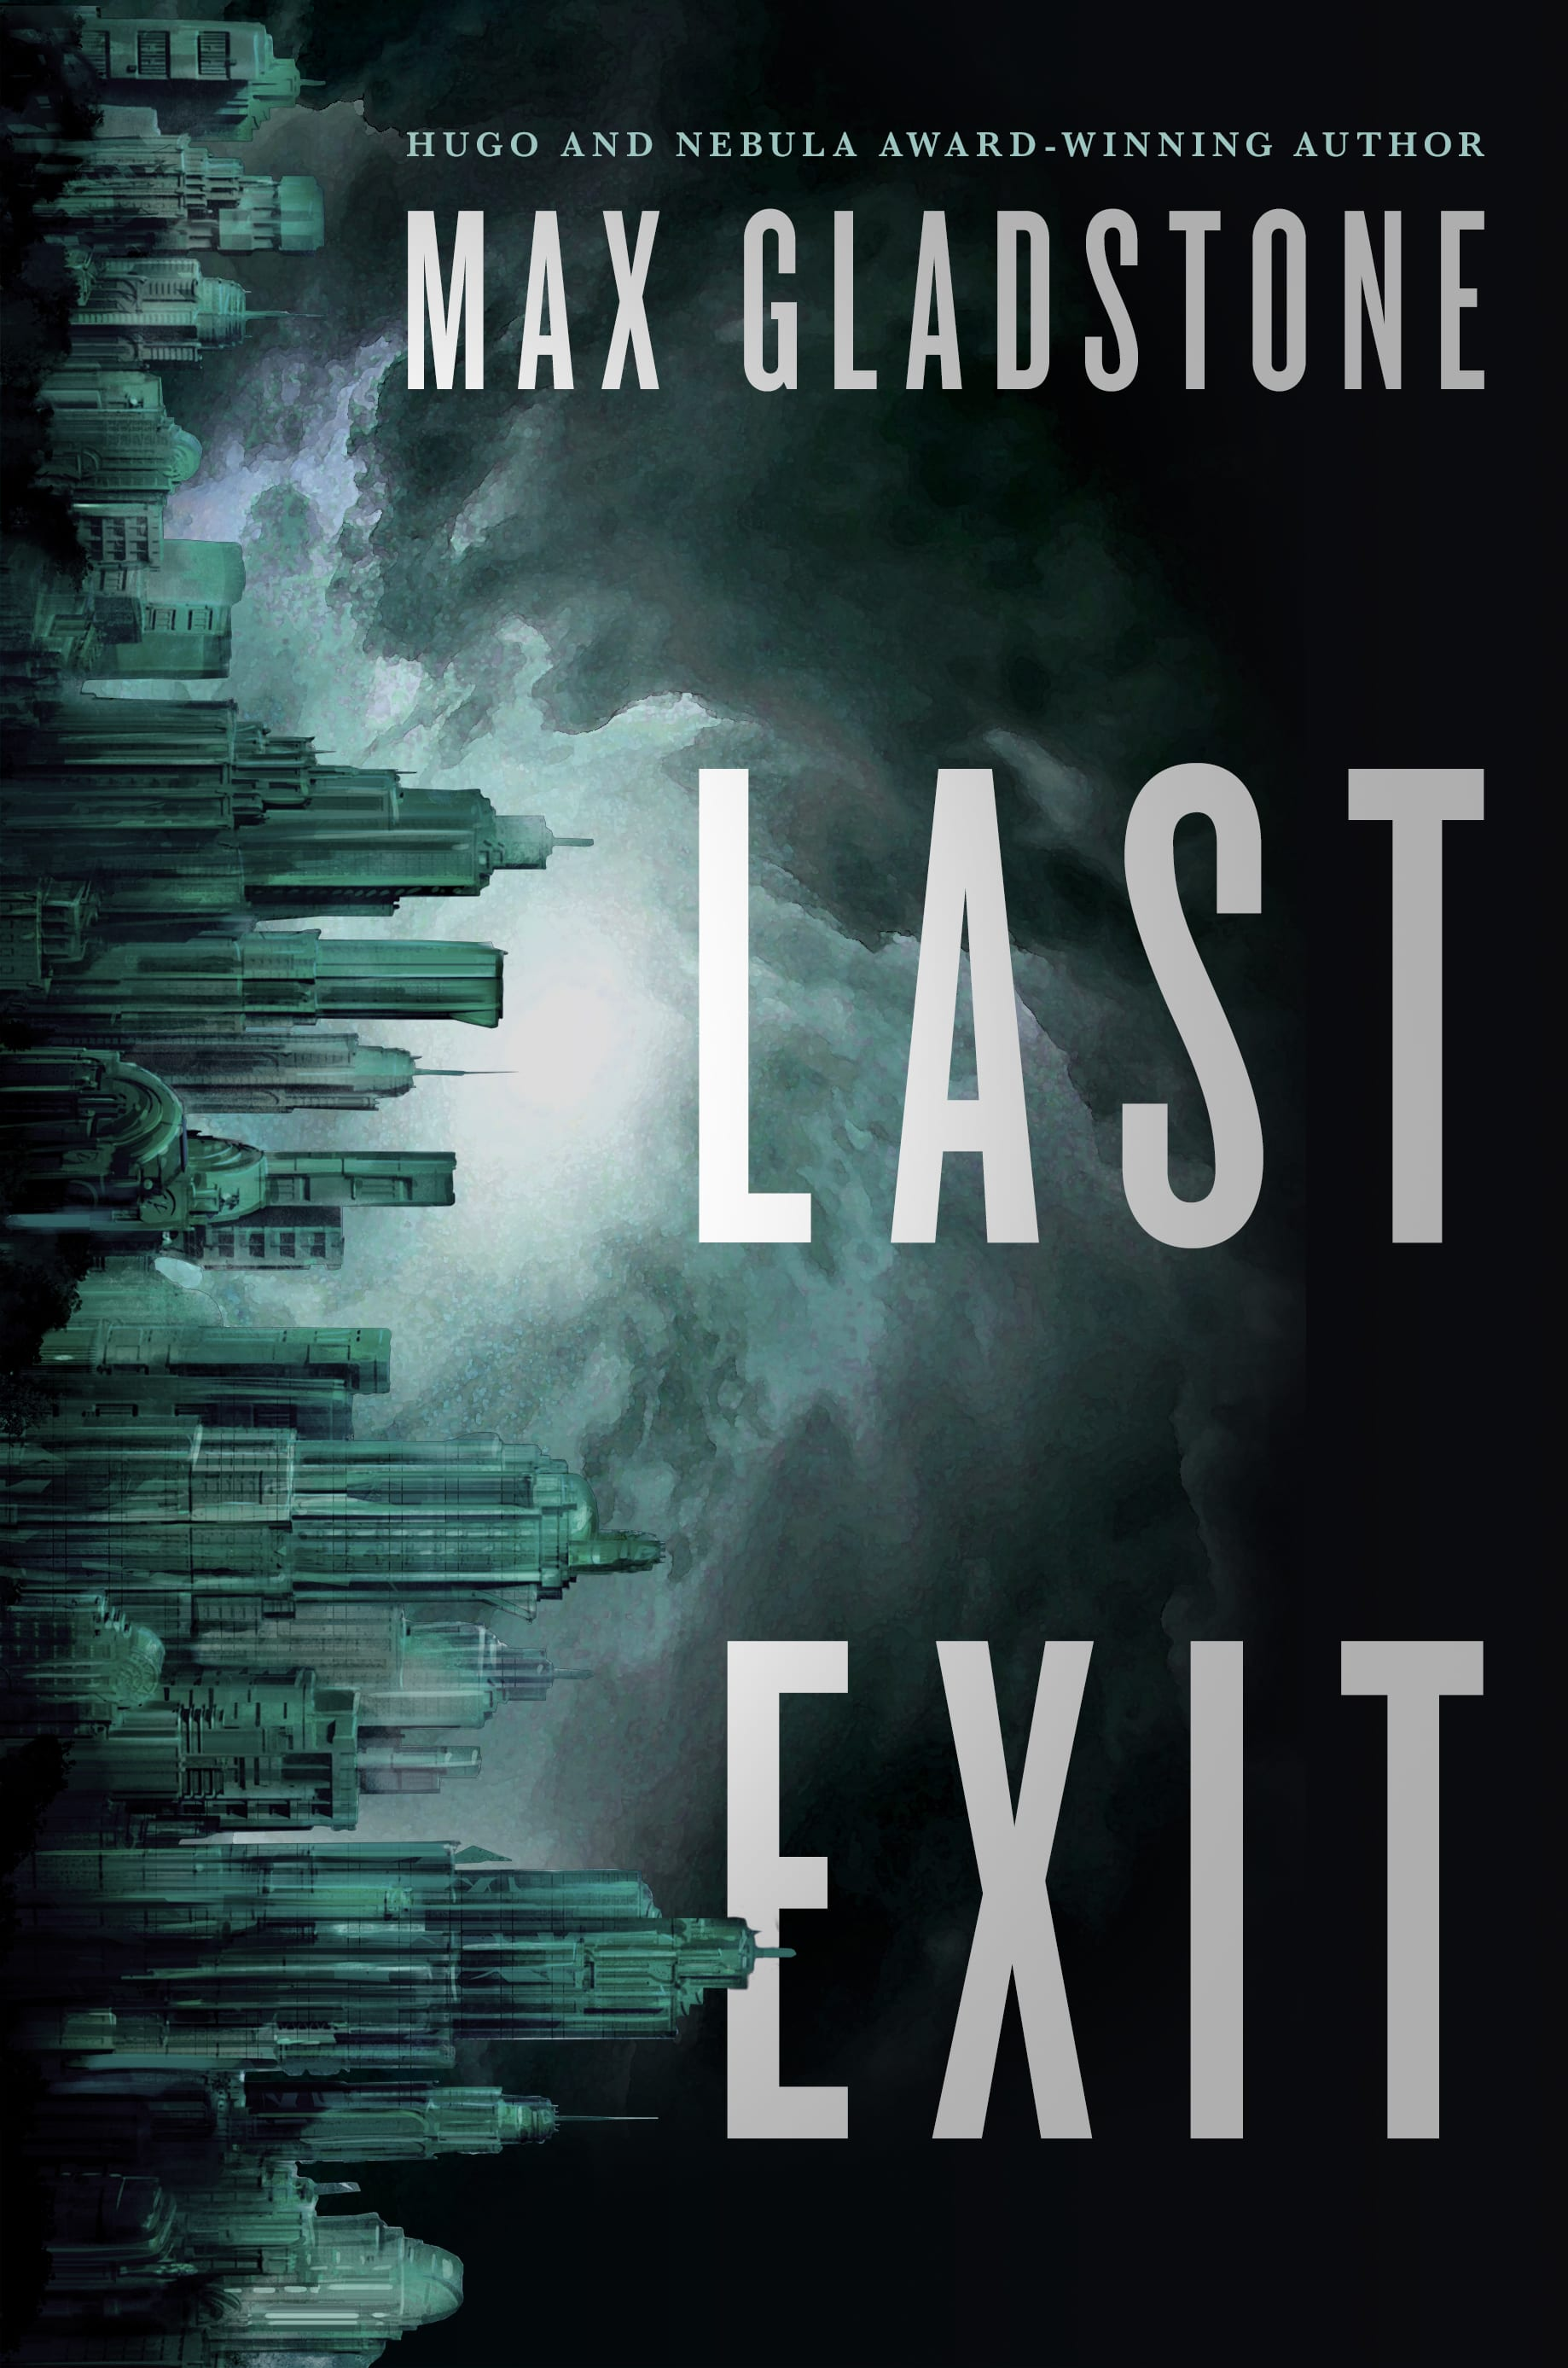 """Novel cover for LAST EXIT. The image is a vertically-aligned futuristic cityscape in a mix of malachite-greens, hugging the left hand margin; the city's skyscrapers point to the right, and a storm of acid-green sky darkening to black swirls around them. To the right, the words LAST EXIT are stacked atop each other in tall, widely spaced capitals, and above them, """"Hugo and Nebula award winning Max Gladstone"""". The overall effect is moody, mysterious, threatening."""